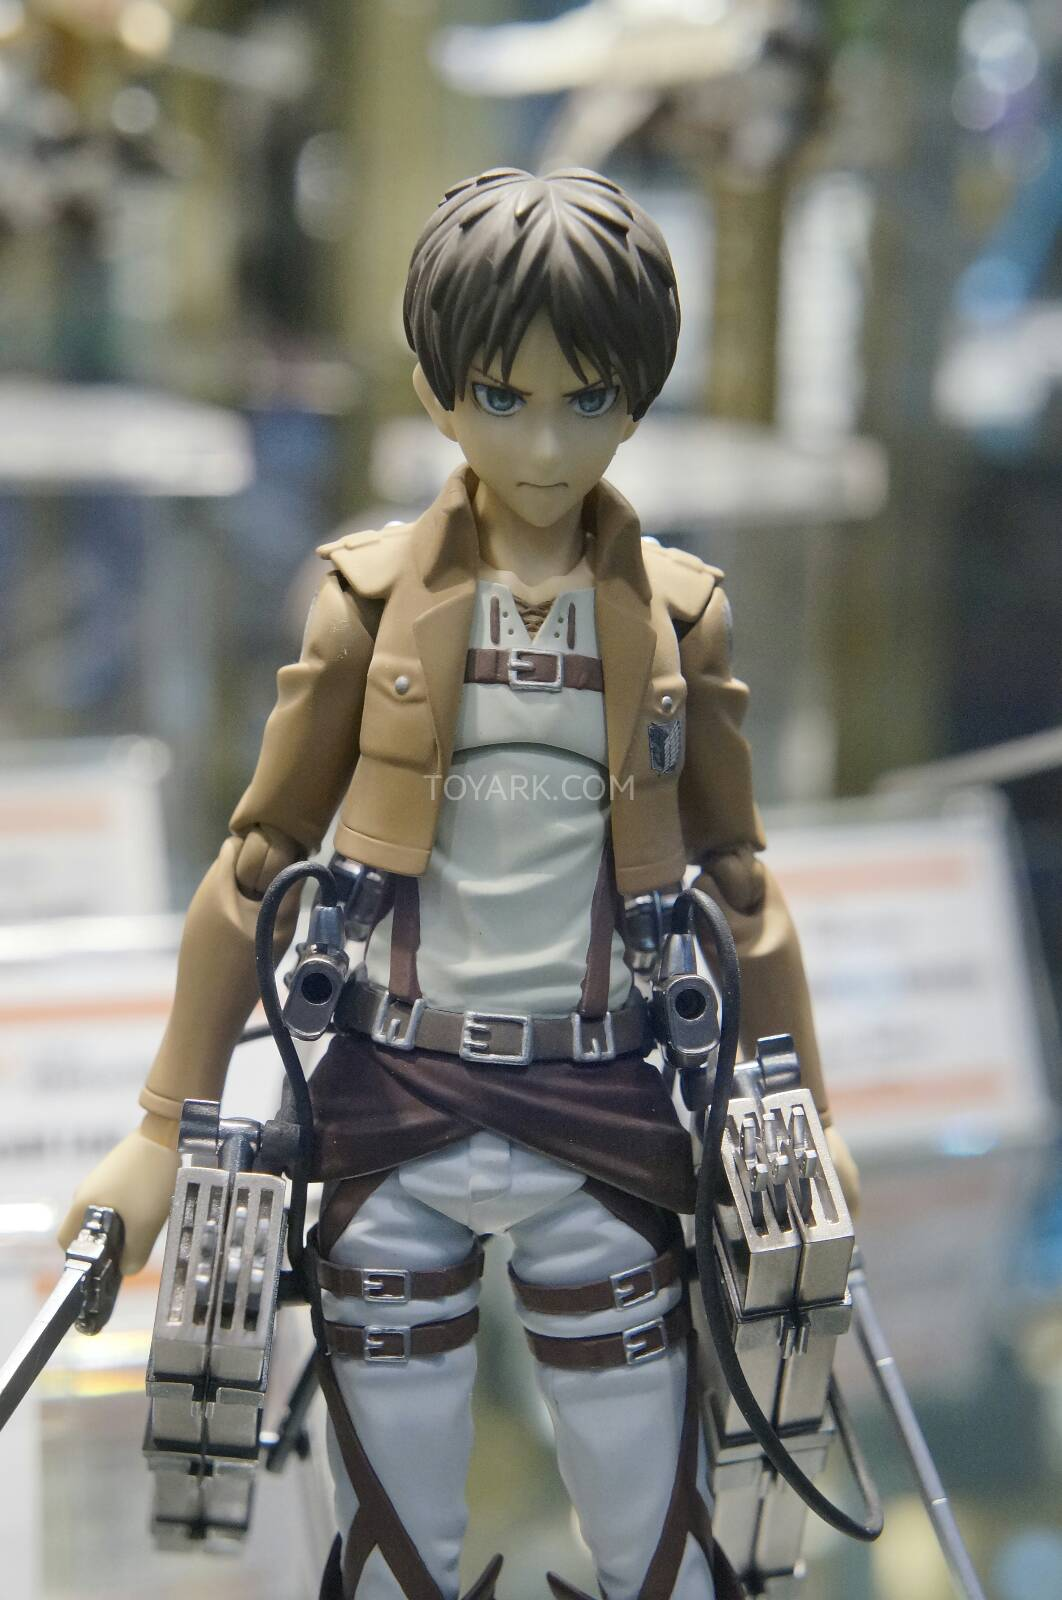 [EVENTO] Toy Fair 2014 - Good Smile Company / Max Factory / Phat Company / FREEing Toy-Fair-2014-Good-Smile-and-Max-Factory-Display-017